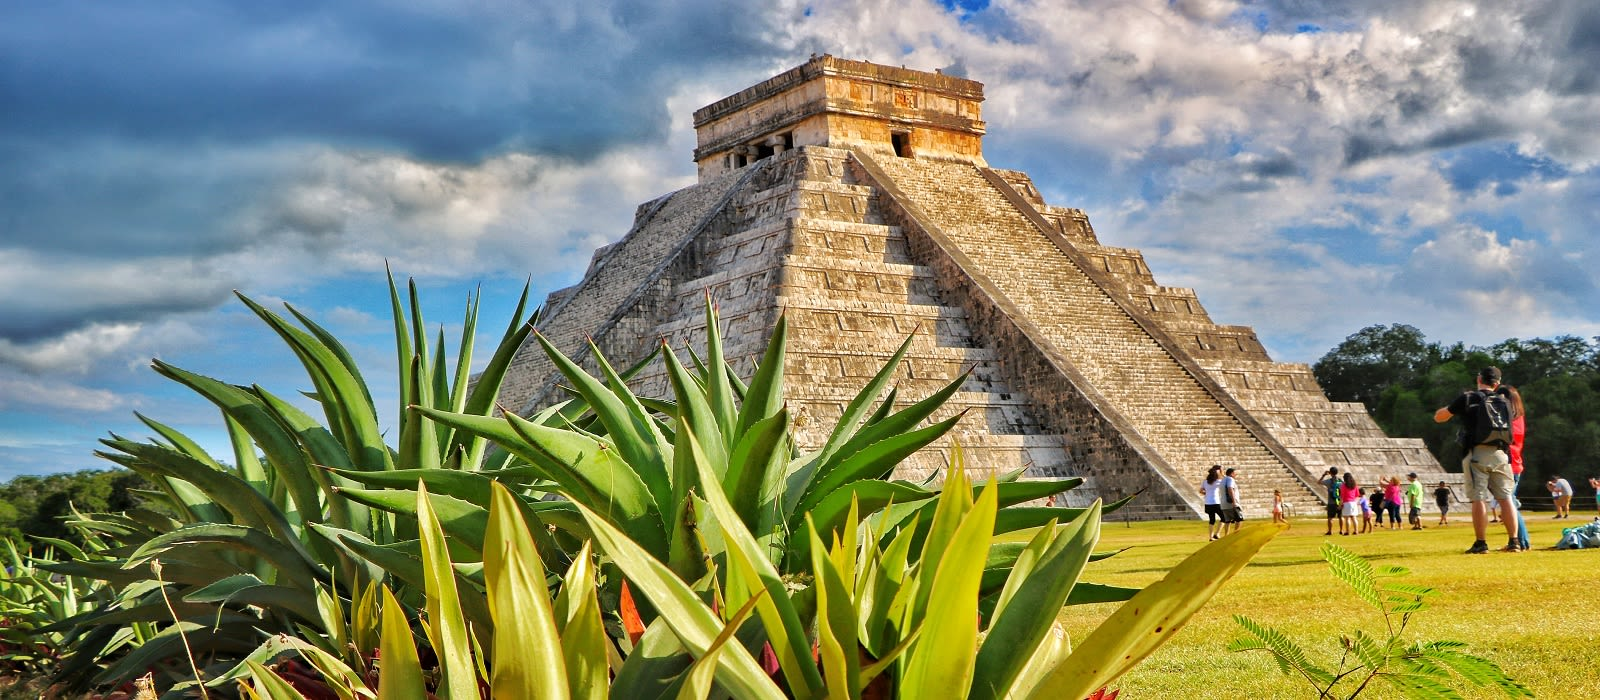 Destination Chichen Itza Mexico